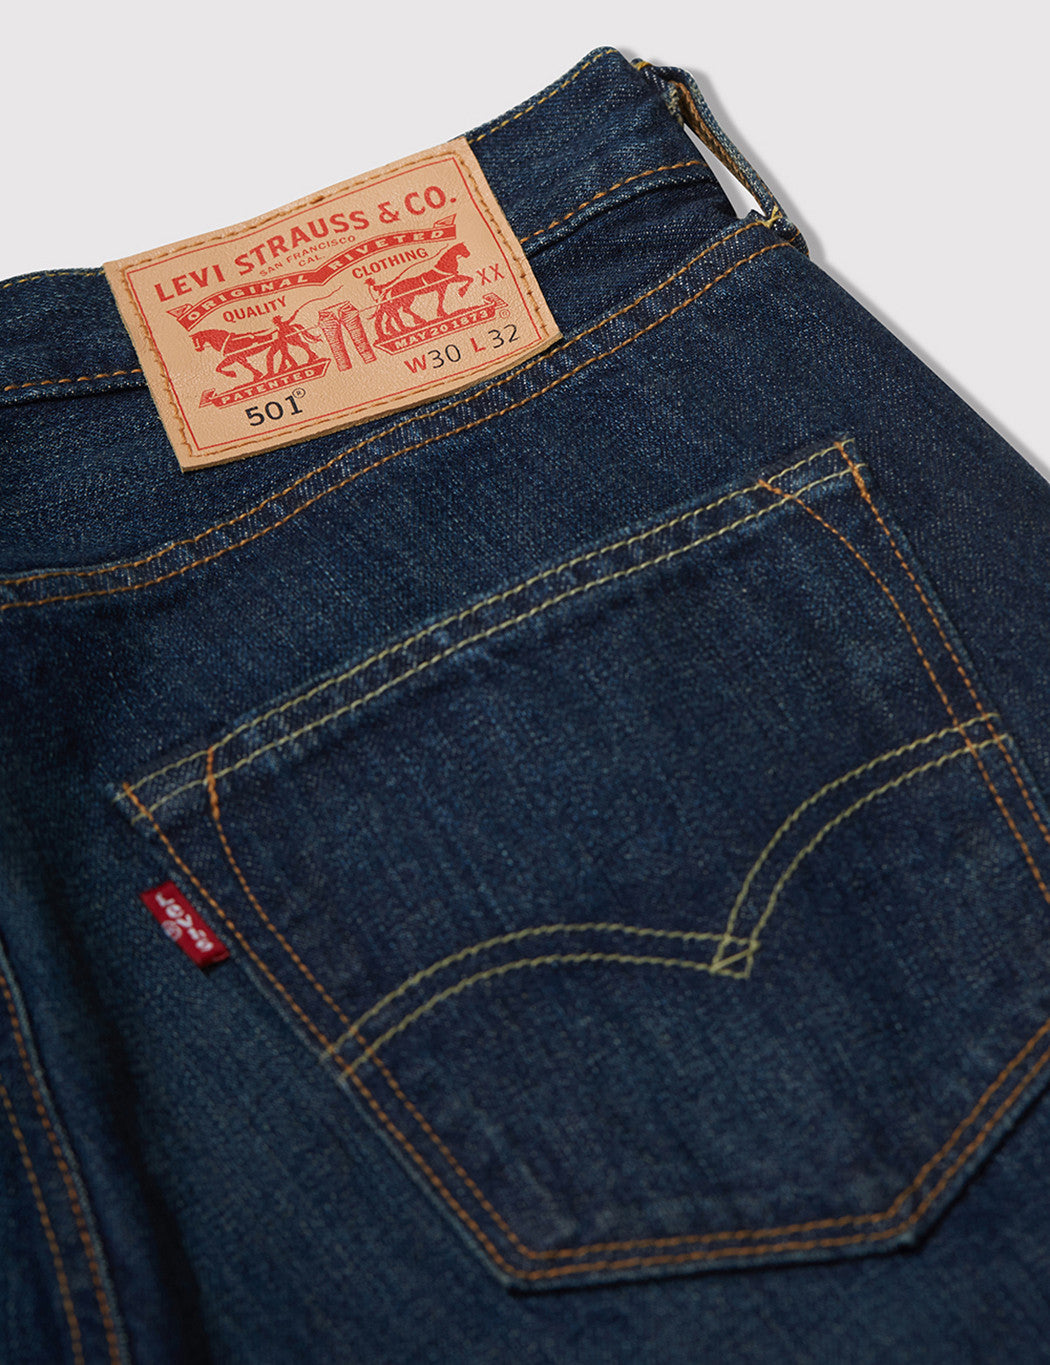 Levis 501 Original Fit Jeans (Relaxed) - Line Dry